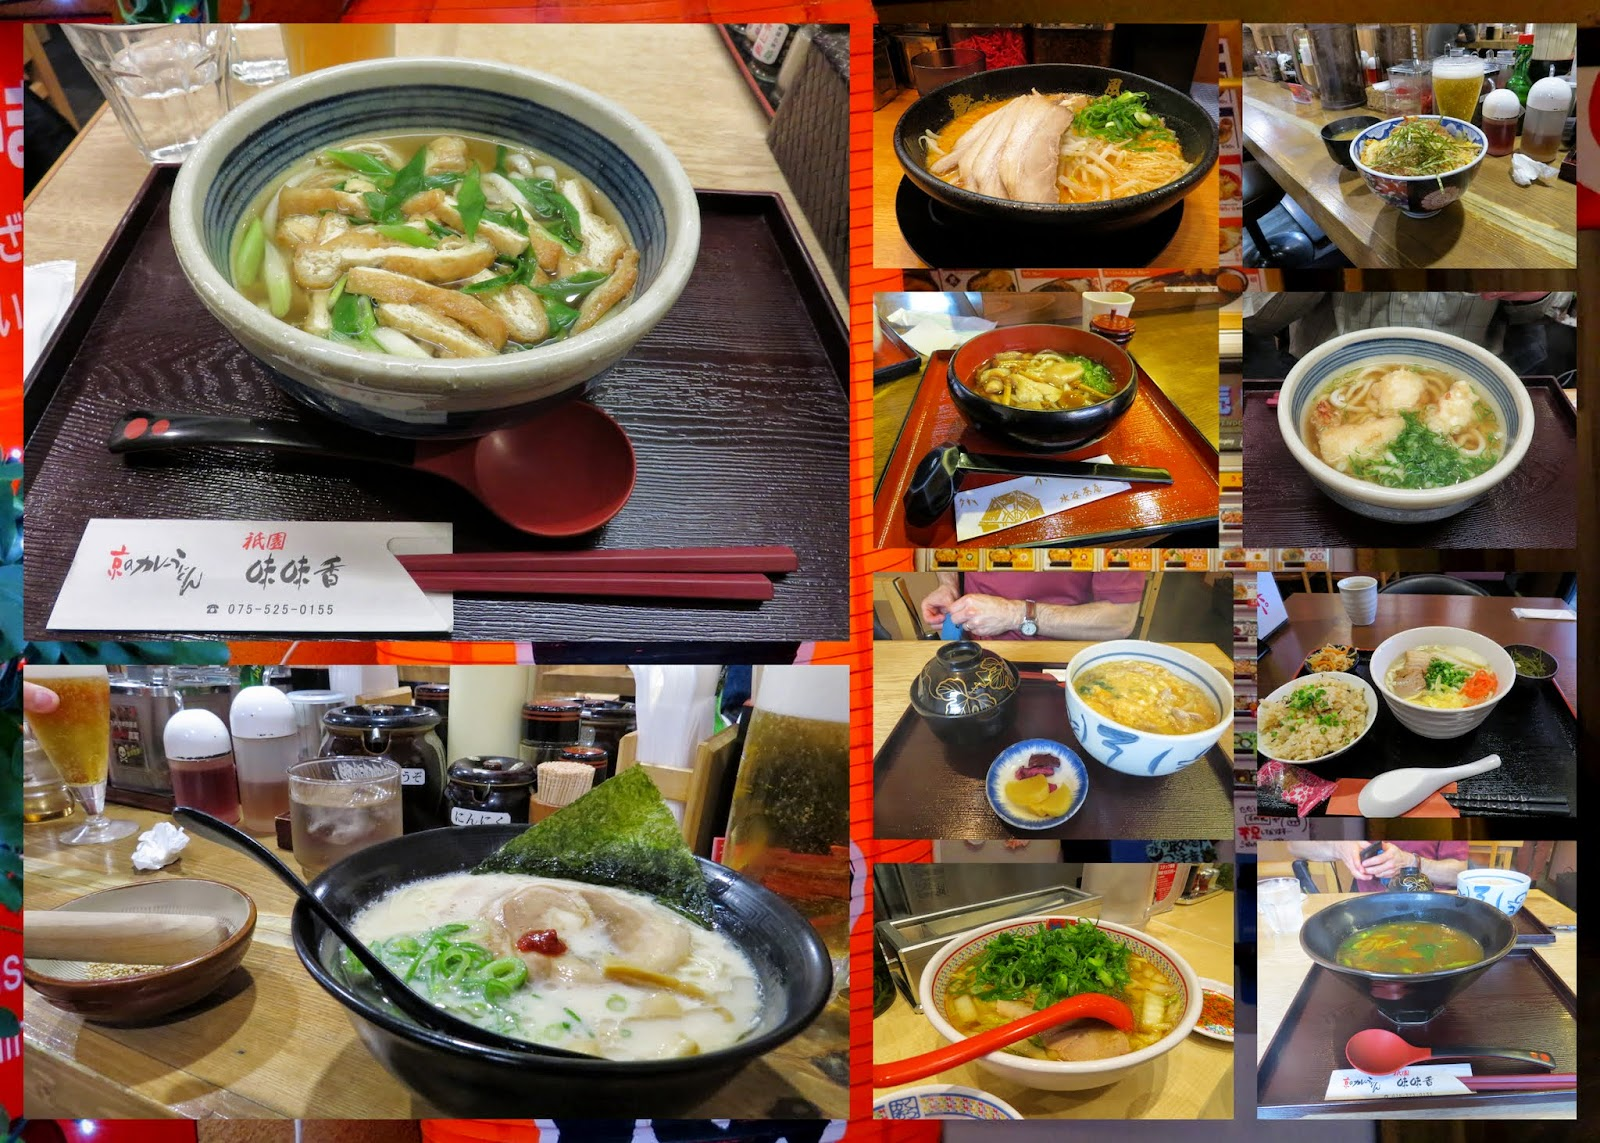 Japanese Udon and Ramen Noodle Bowls